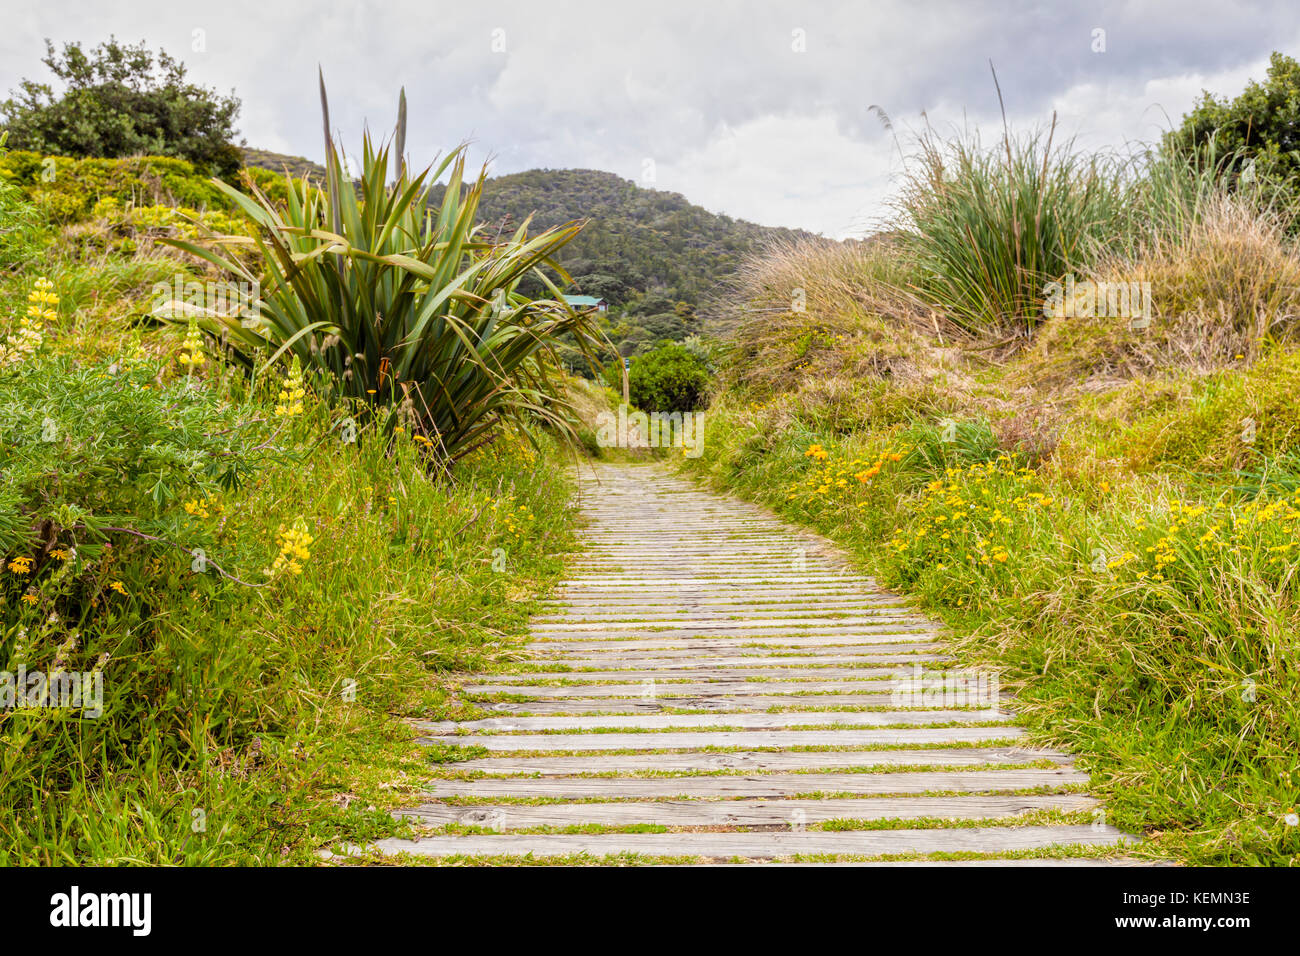 Promenade à travers les dunes de sable couvertes de végétation, Piha, Auckland, Nouvelle-Zélande, Photo Stock